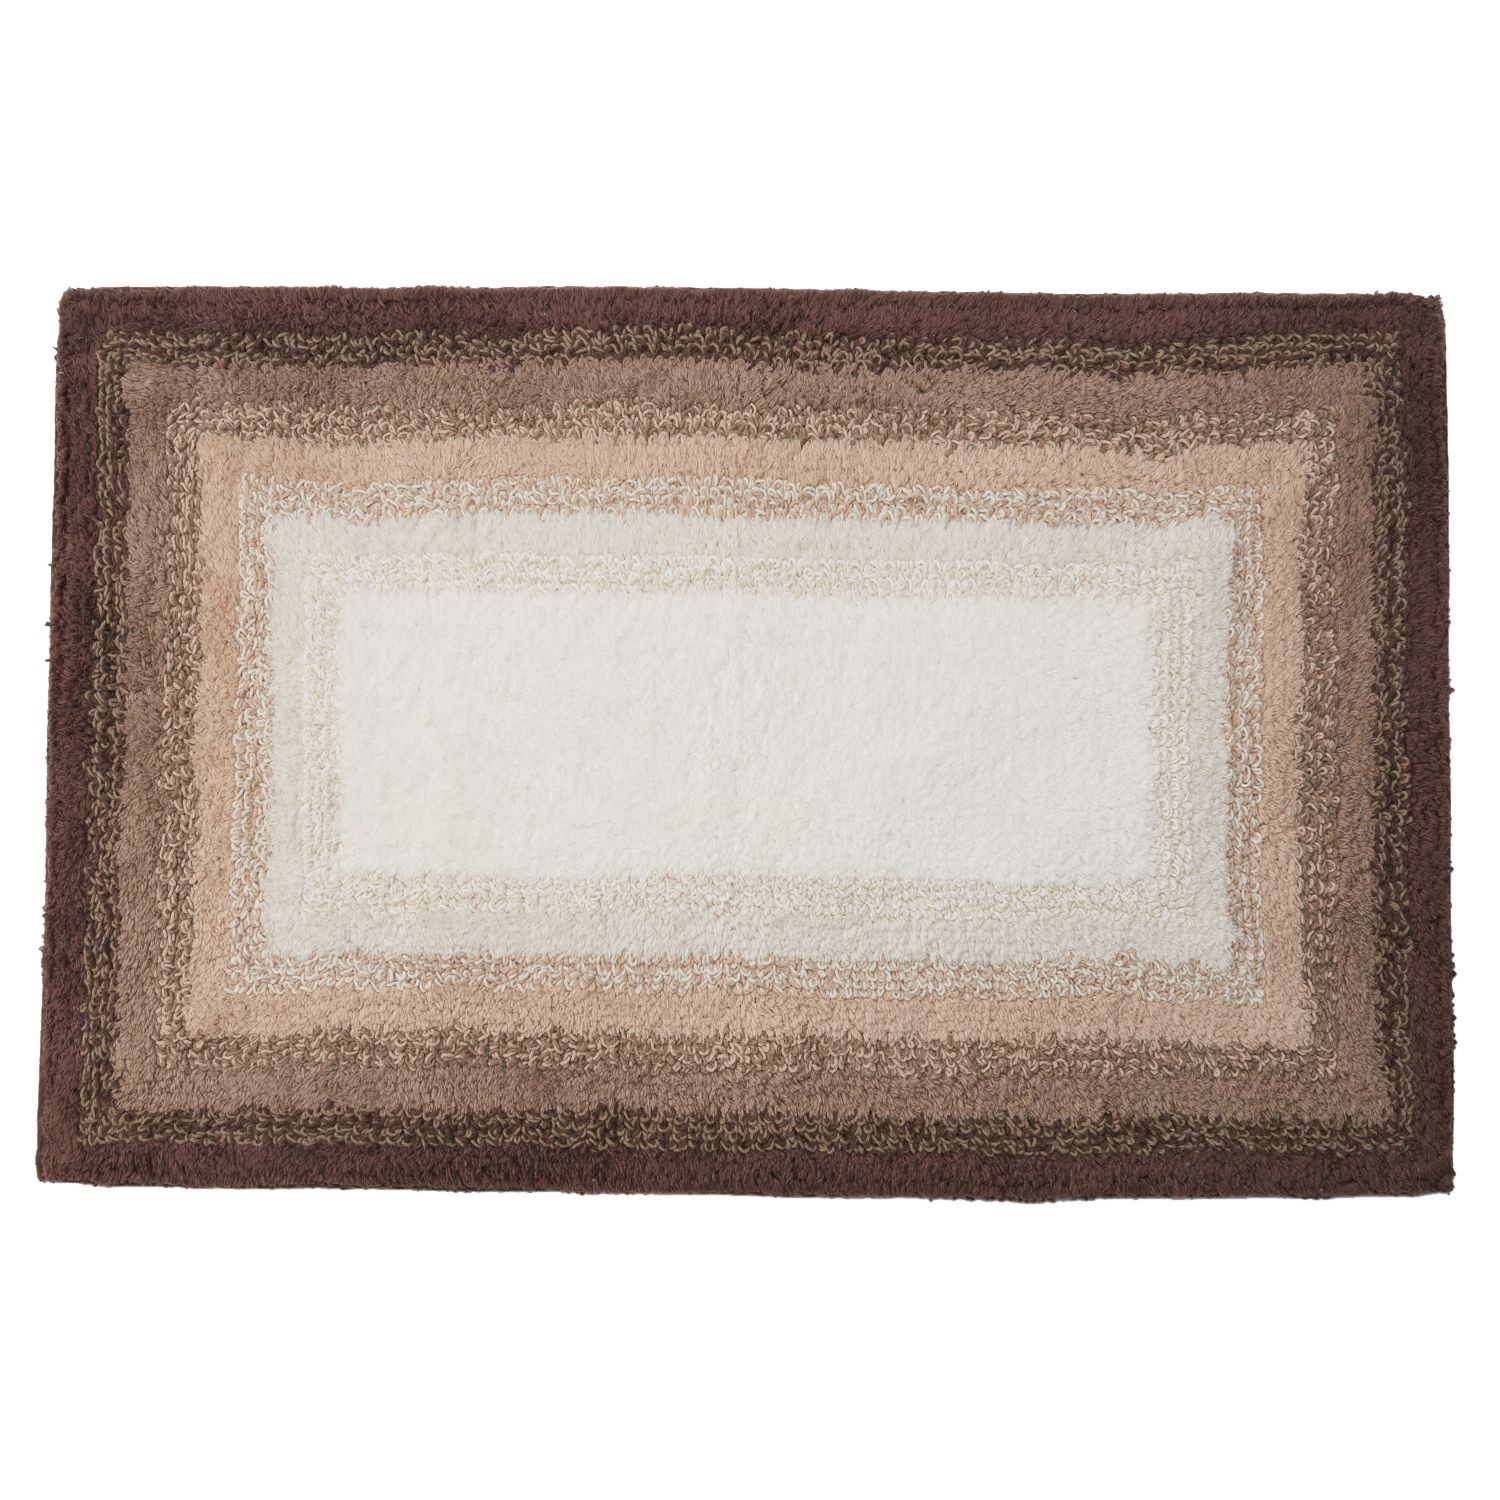 SONOMA Goods For Life™ Ombre Border Reversible Bath Rug. Brown Dark Aqua  Gray